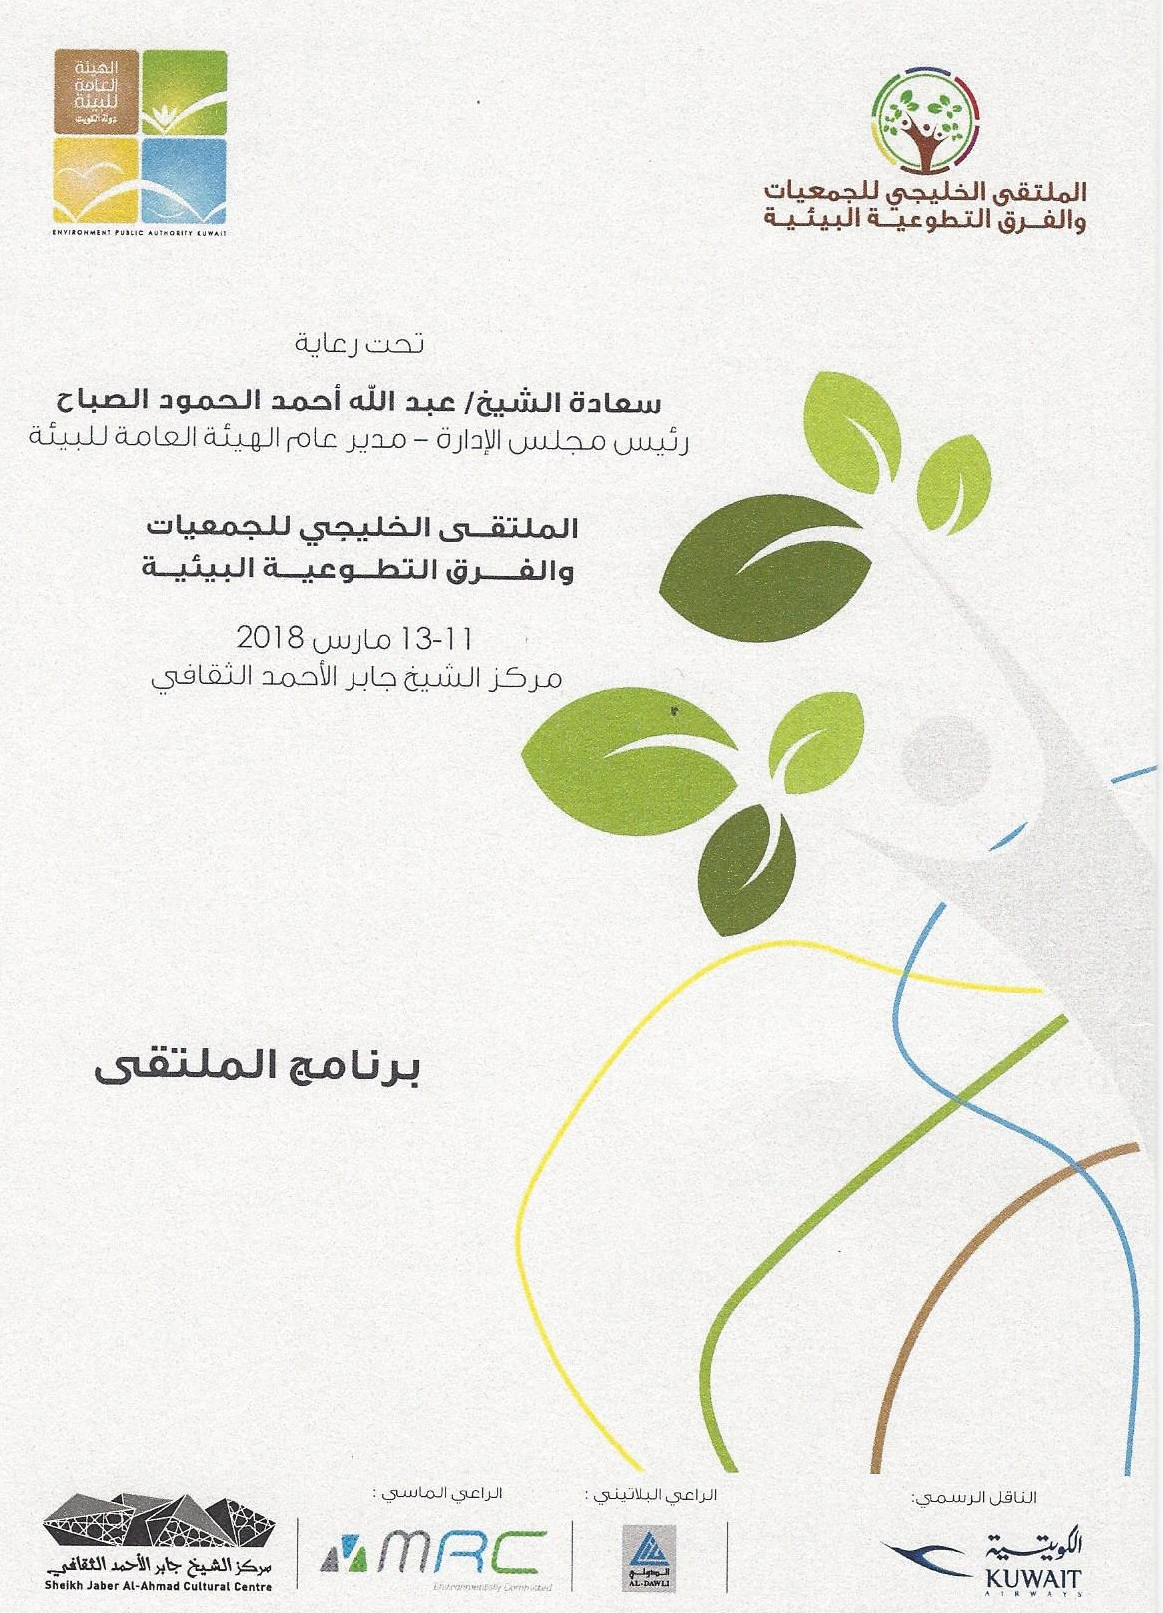 MRC Diamond sponsor of the Gulf Forum for Voluntary and Environmental Voluntary Associations and Associations